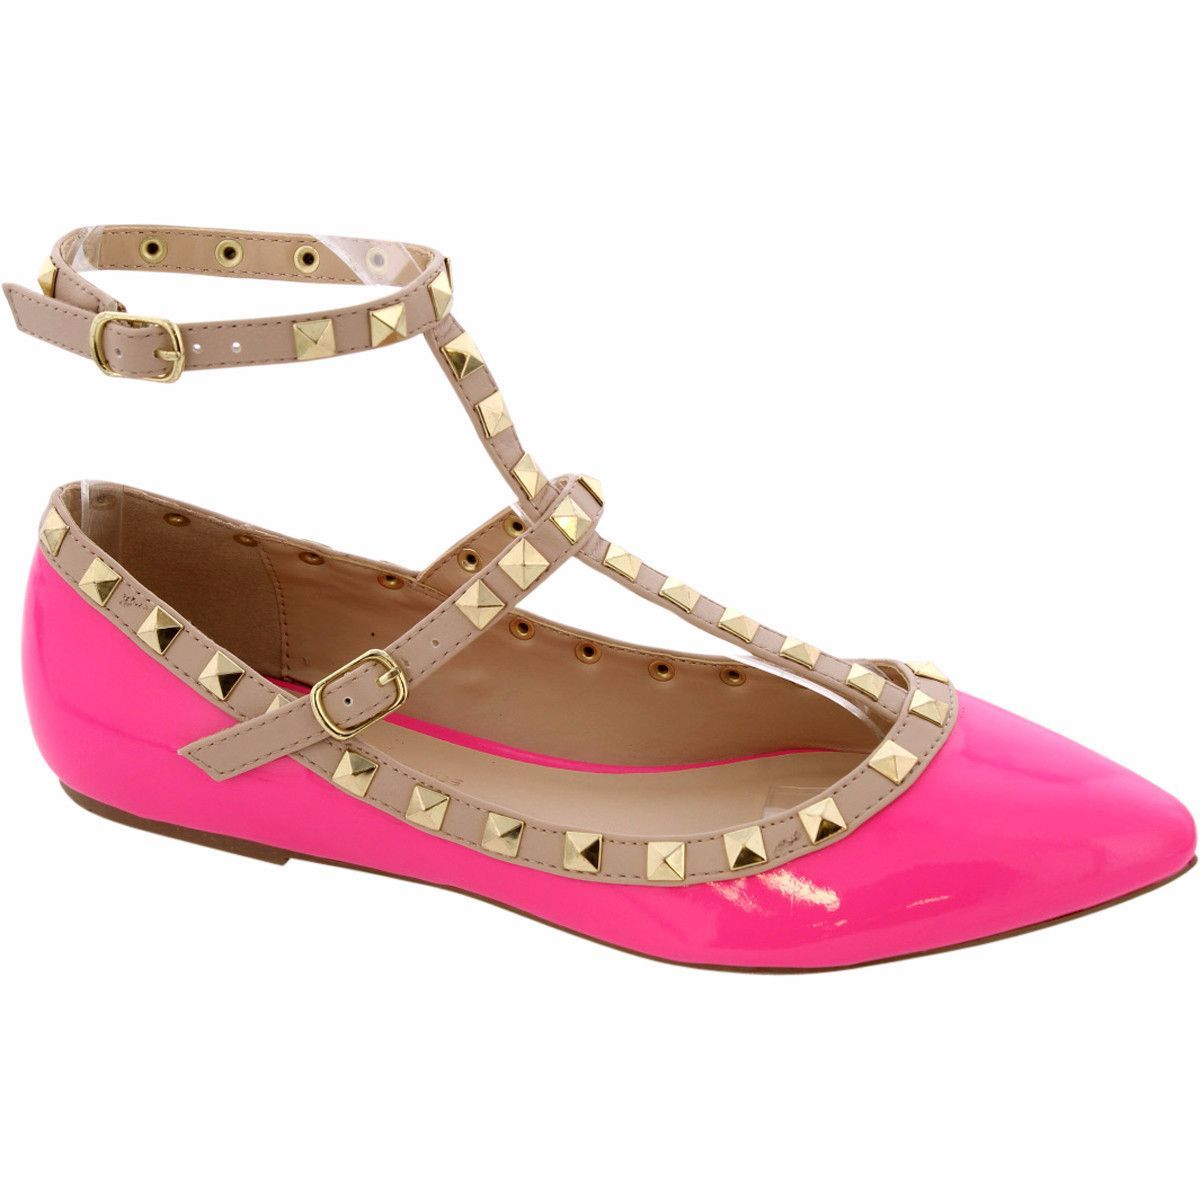 Wild Diva Lounge - Women's Nat Pointy Studs Flats - Neon Pink